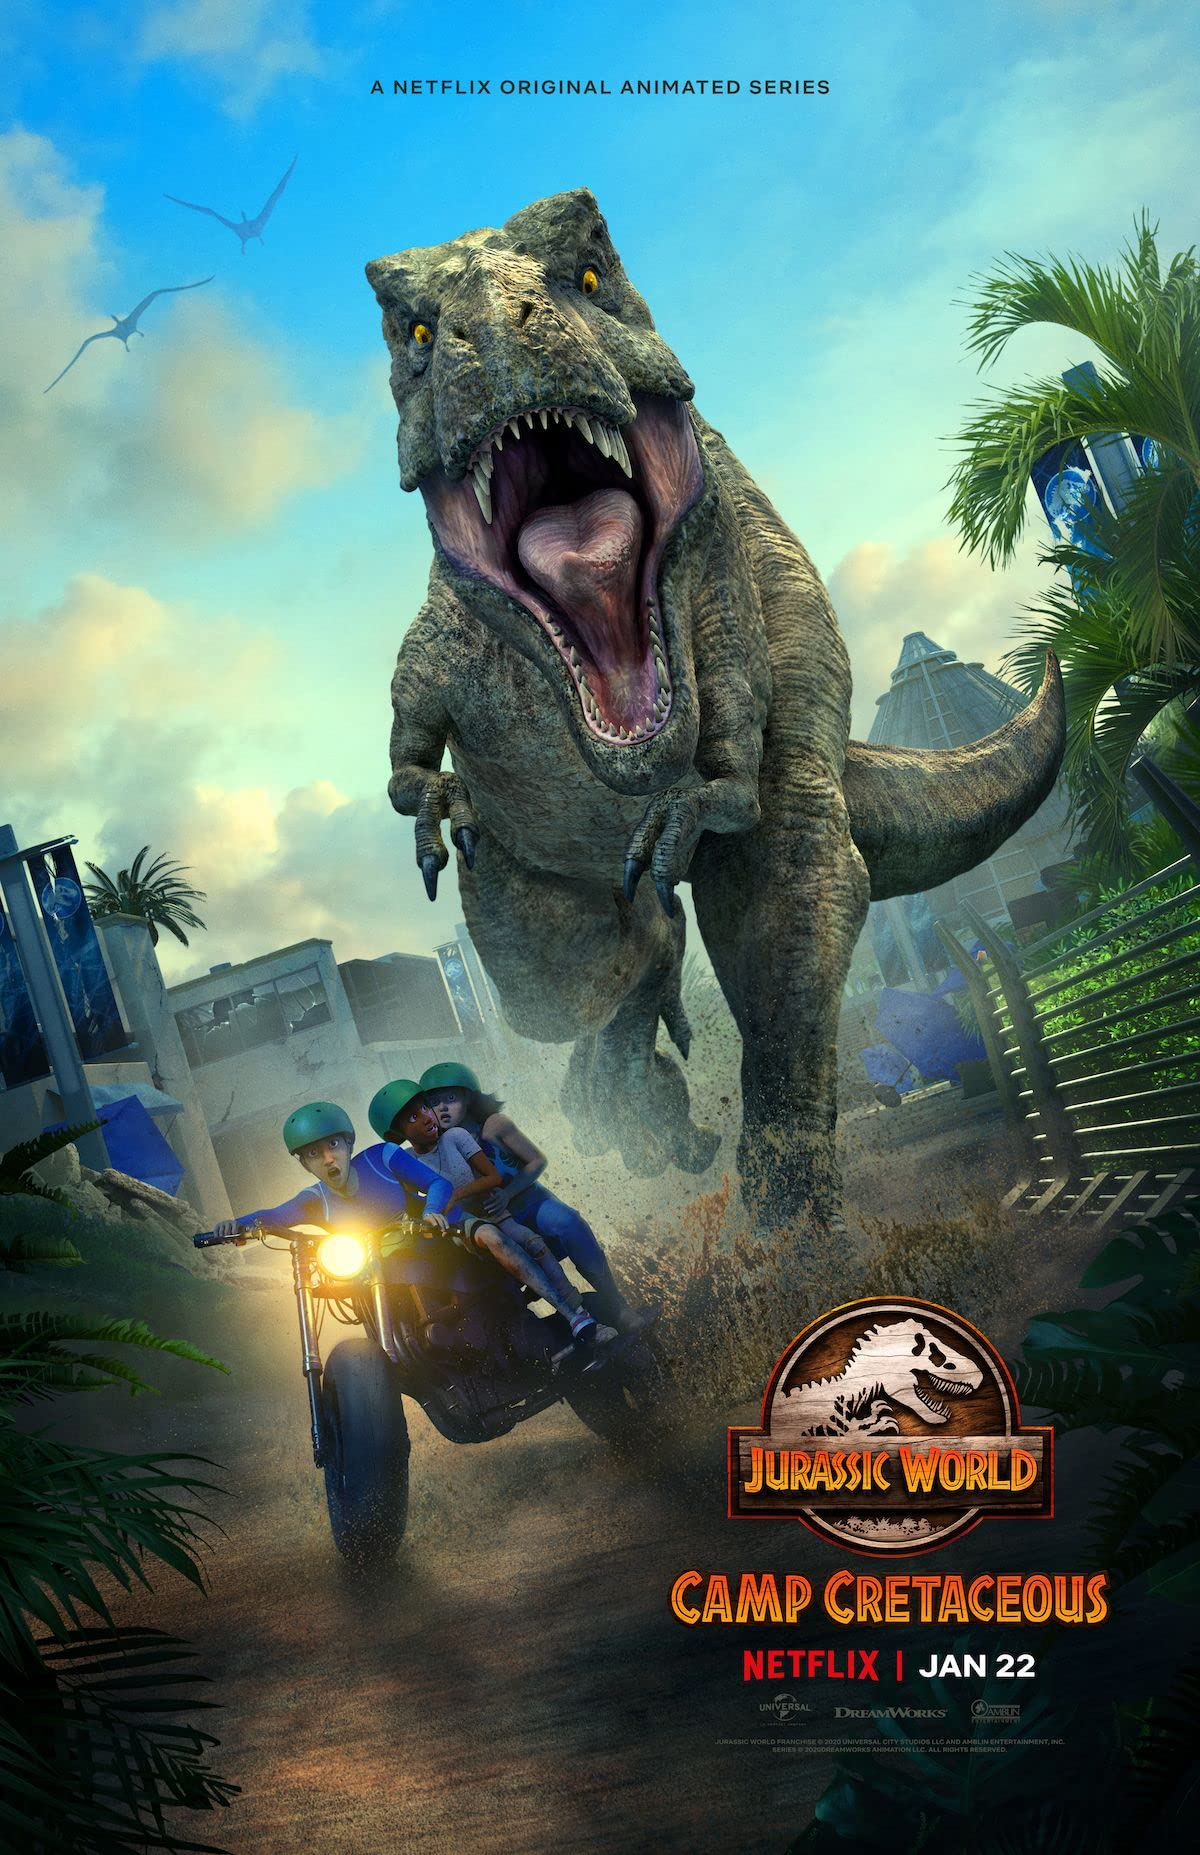 Jurassic World: Camp Cretaceous S02 (2021) Hindi Netflix Complete Web Series 720p HDRip 1310MB Download